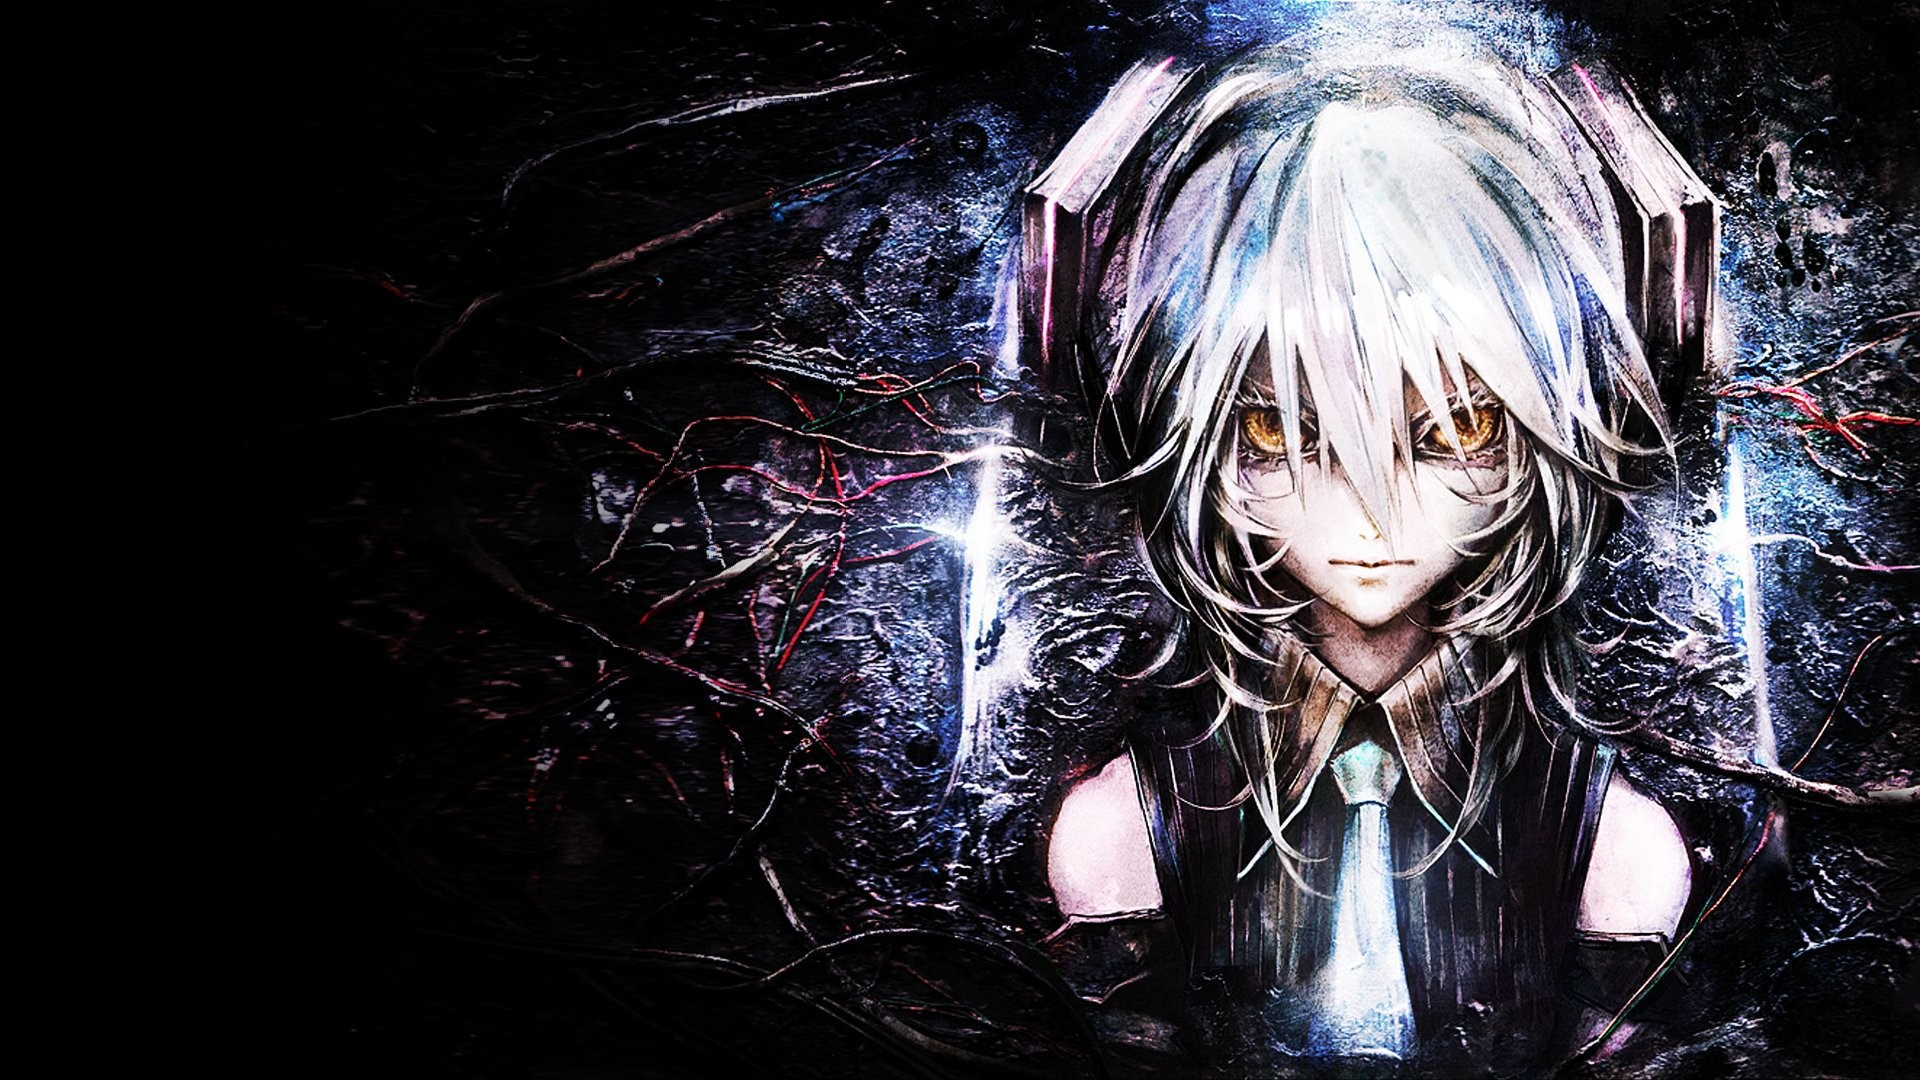 Res: 1920x1080, HD Wallpaper | Background Image ID:82284